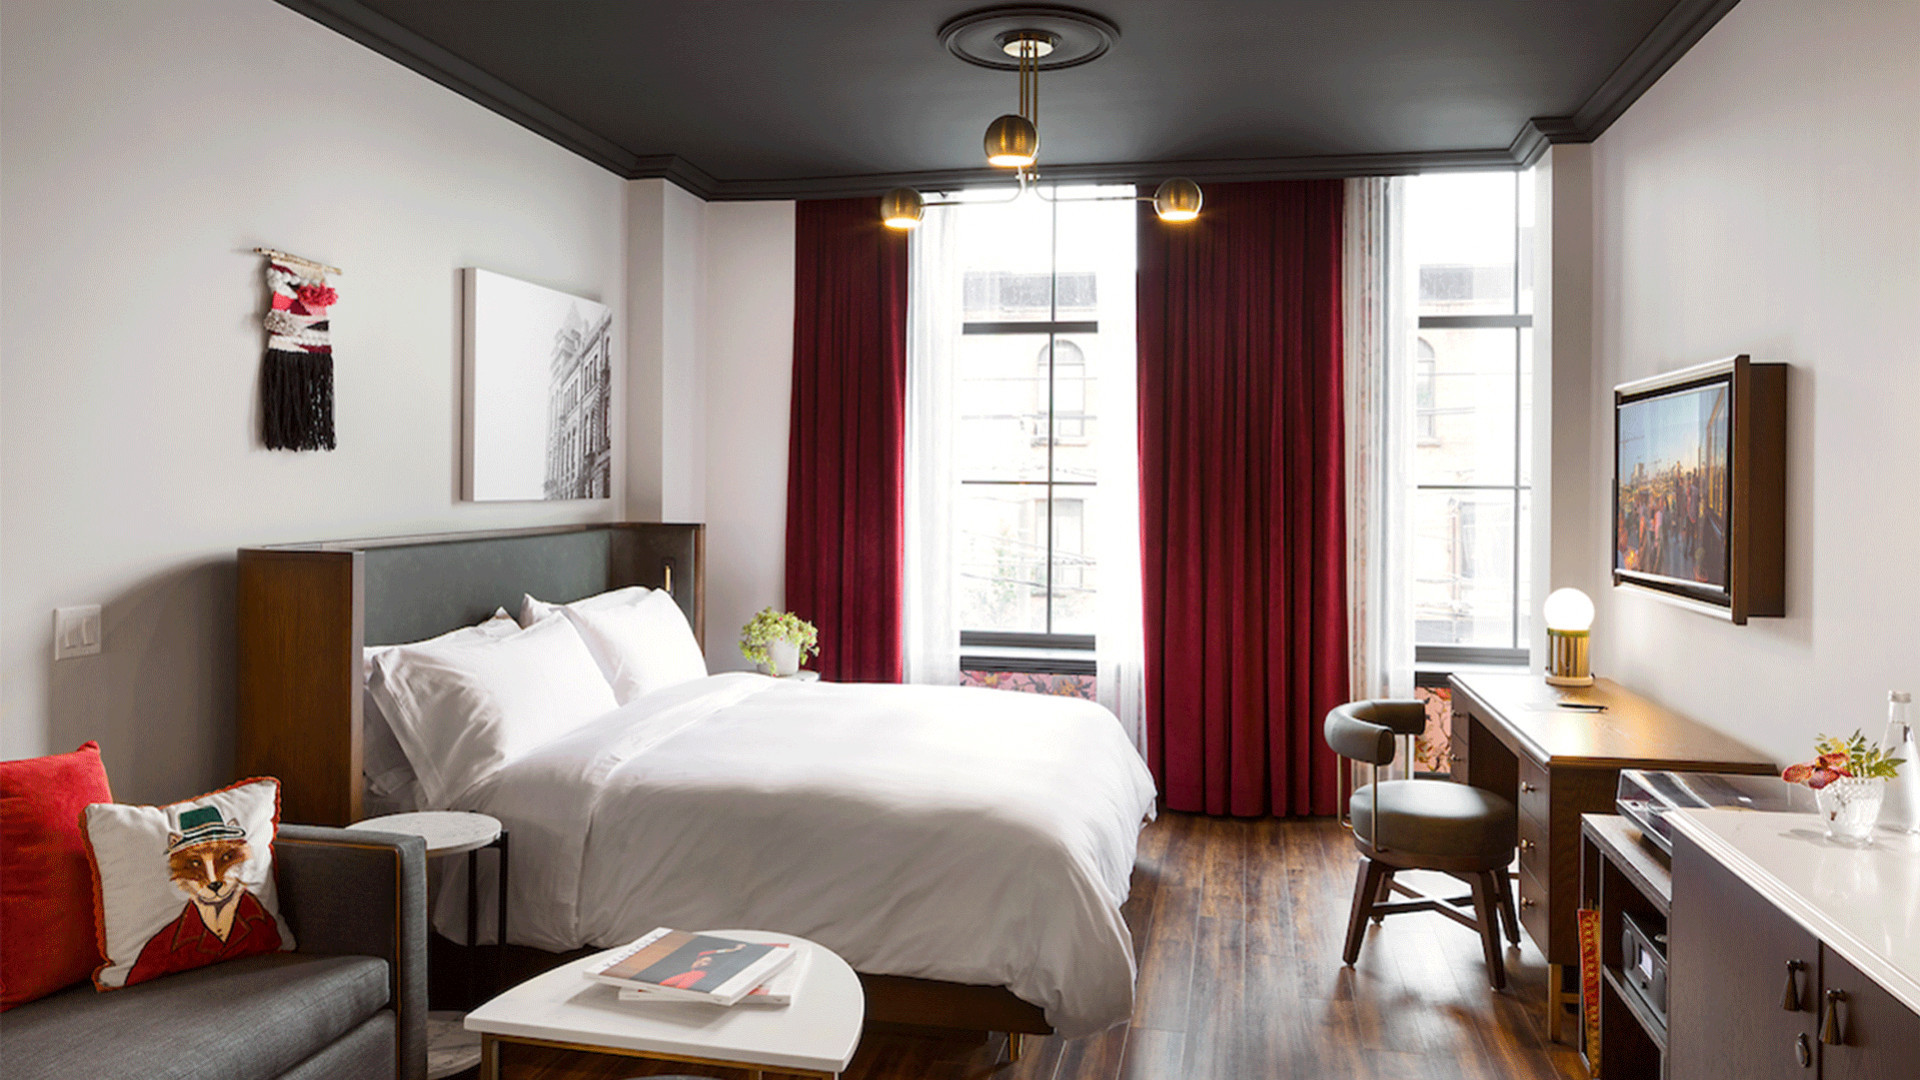 Best hotels Toronto staycation | The Broadview Hotel one bedroom suite